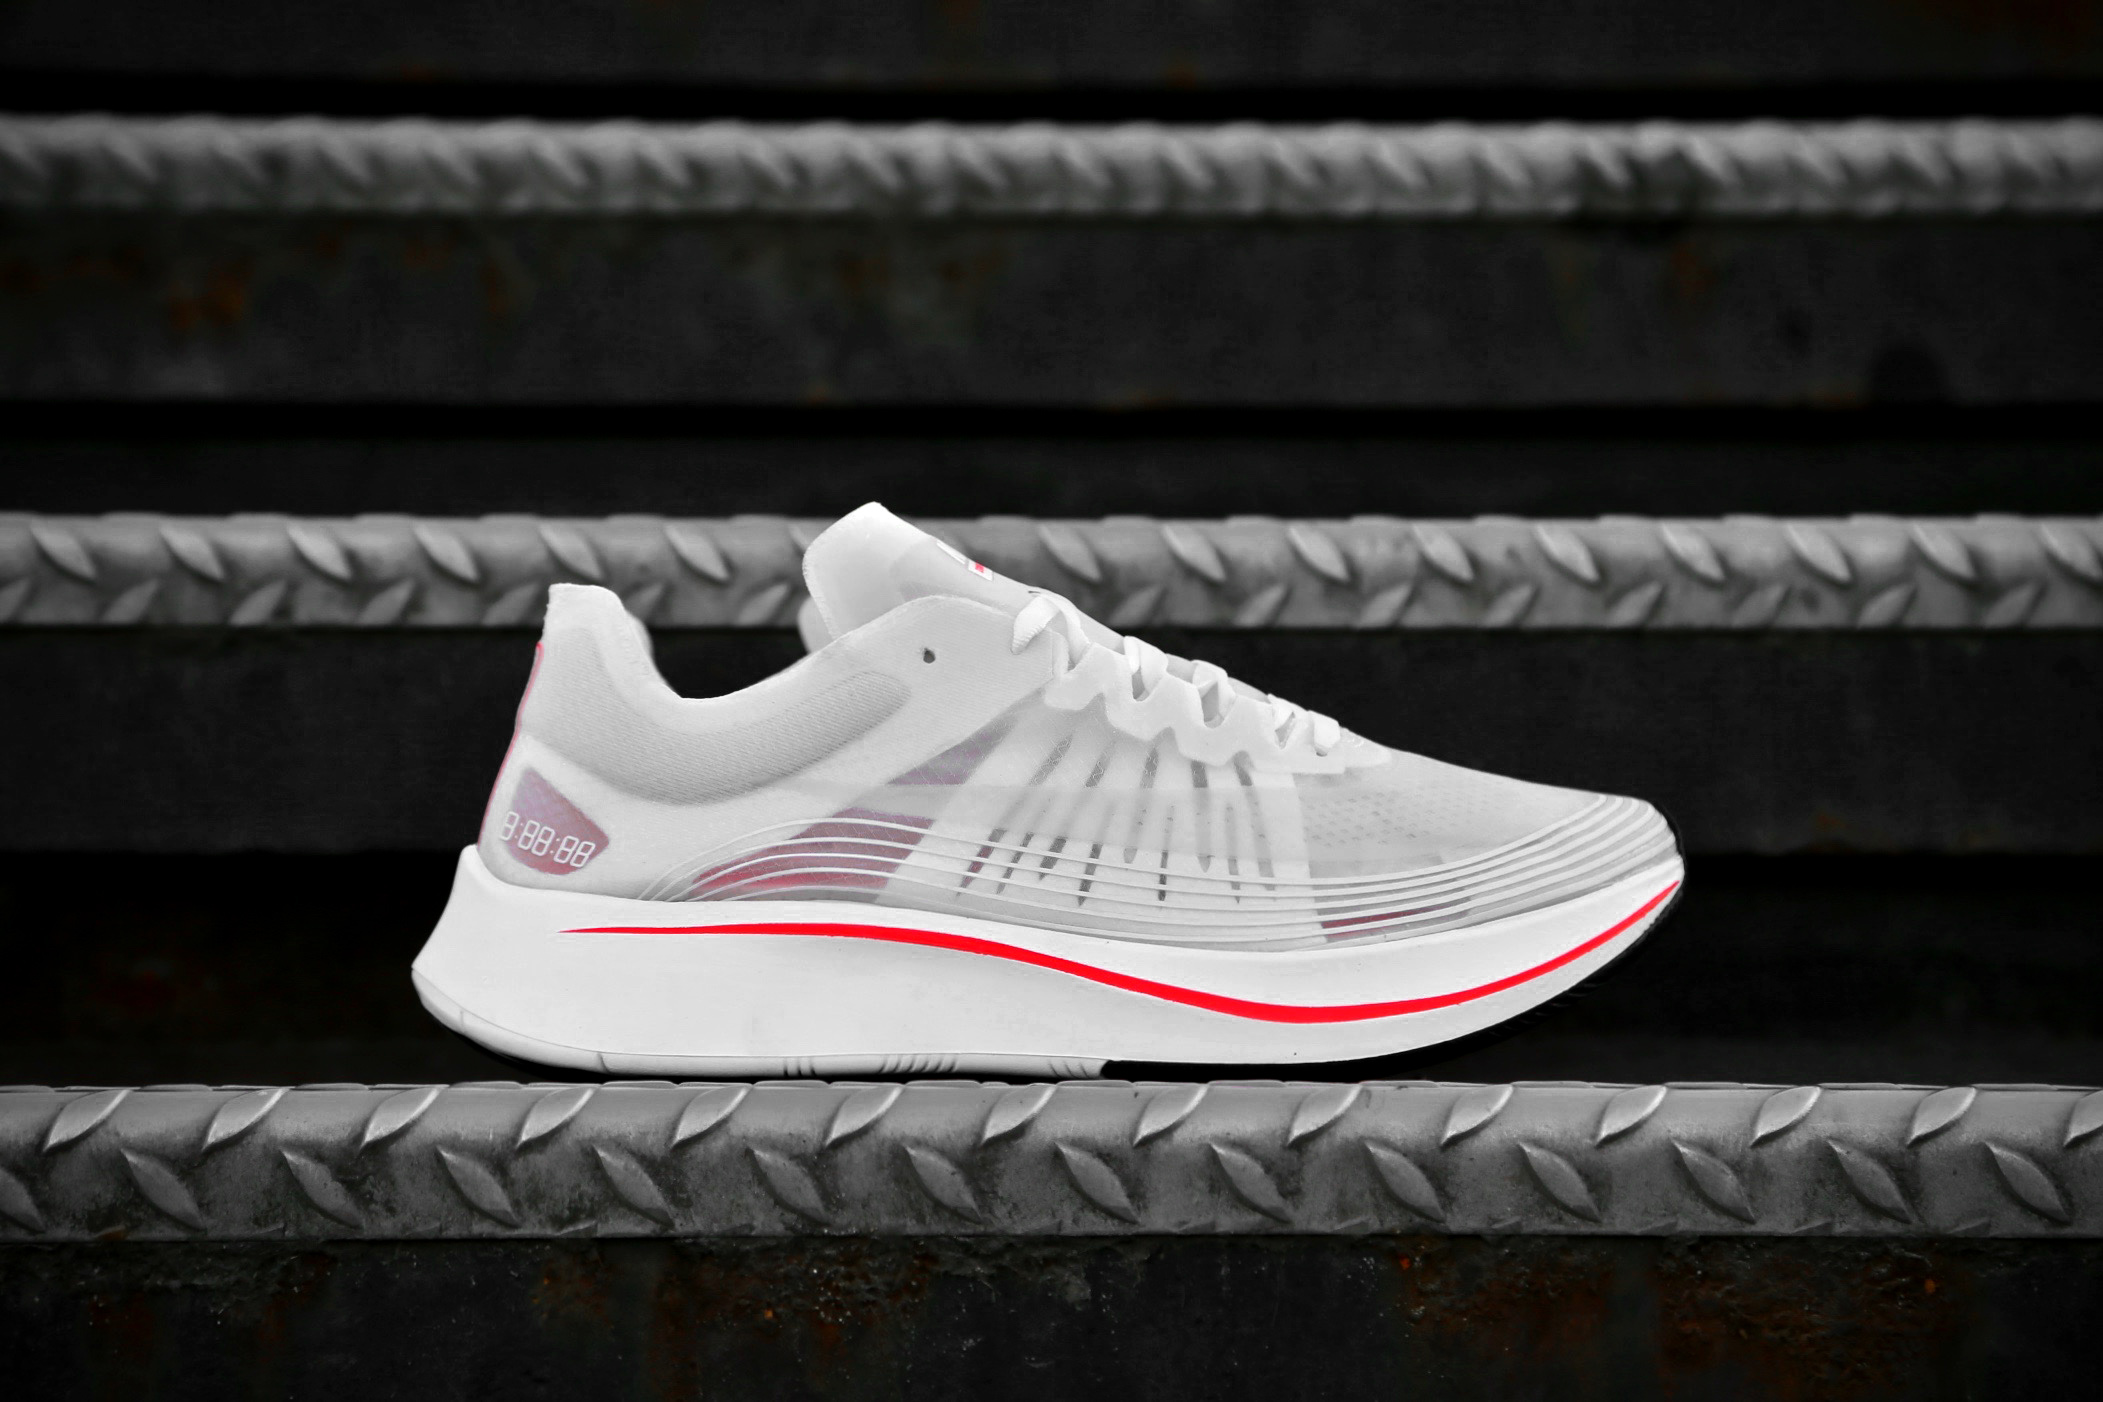 920ffdafbc4d Nike Zoom Fly SP – White   Sail   Bright Crimson – STASP